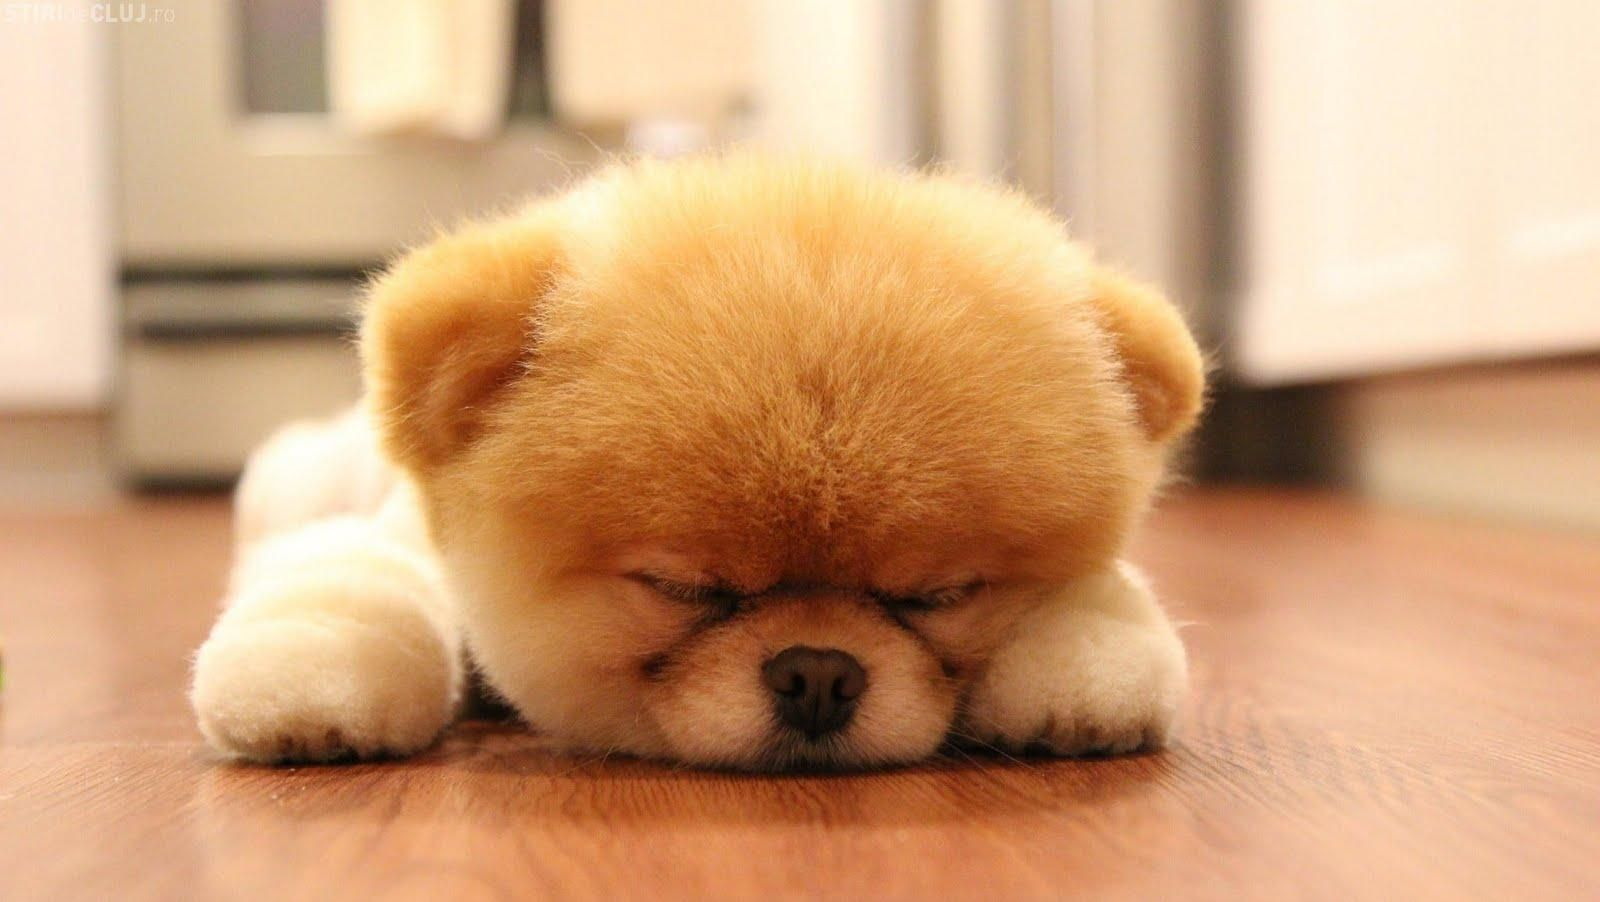 Boo Dog Hd Wallpapers Boo The Dog Bear Puppy Cute Baby Animals